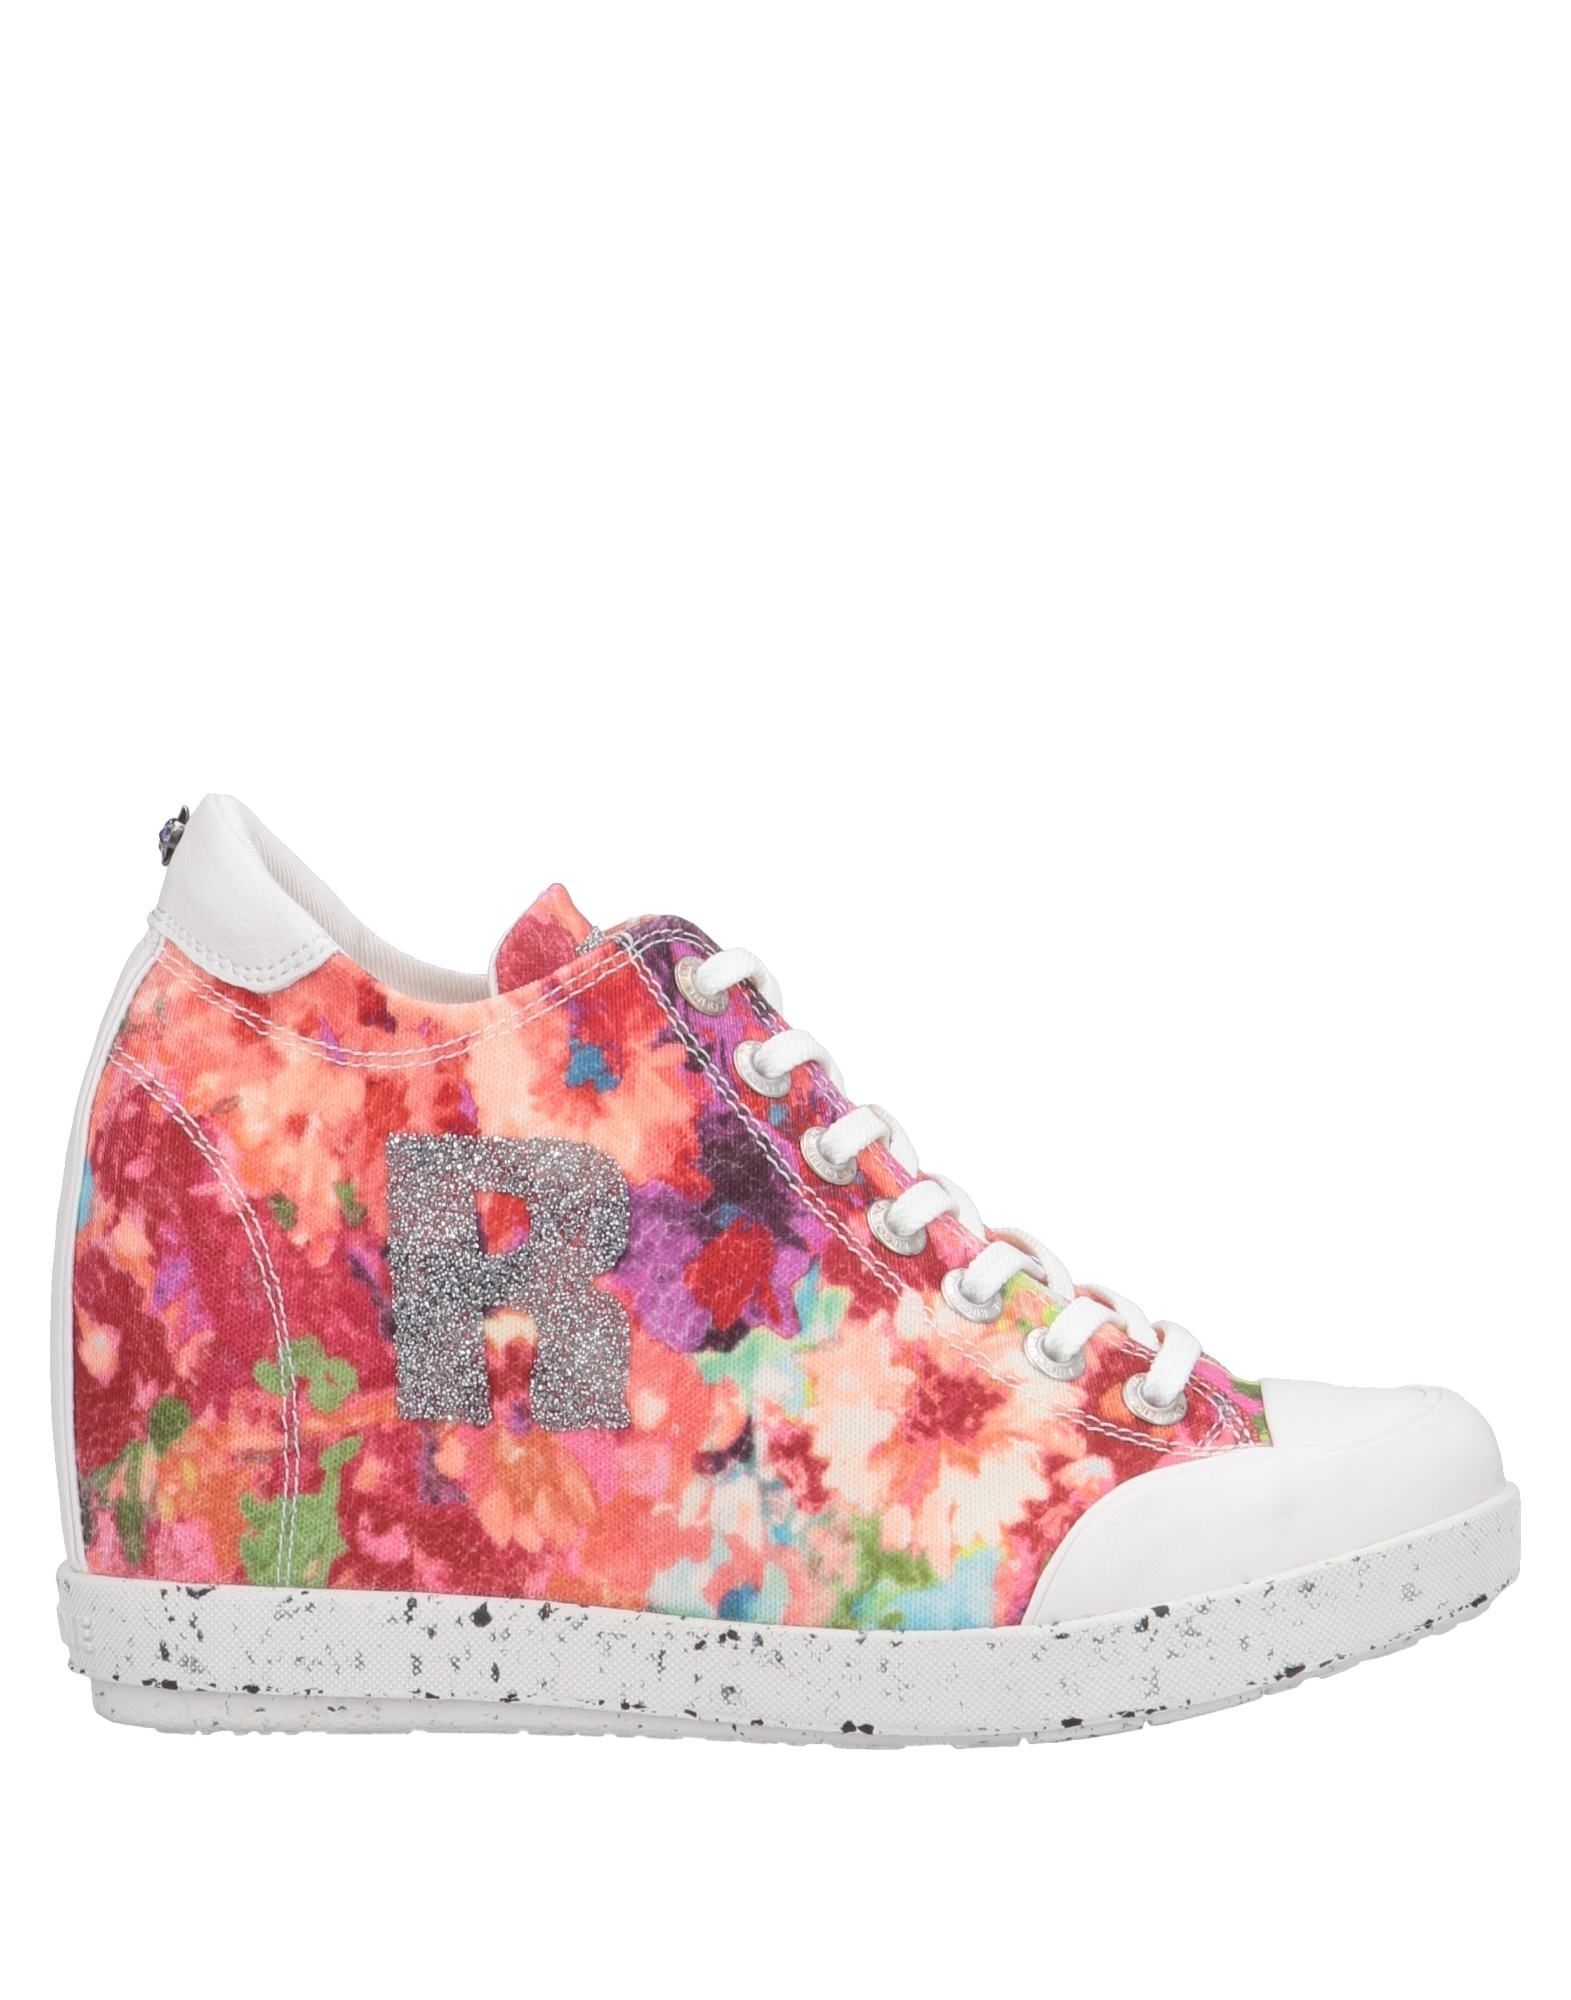 Ruco Line Sneakers - Women Ruco Line Sneakers online on 11559759NF  United Kingdom - 11559759NF on f88581